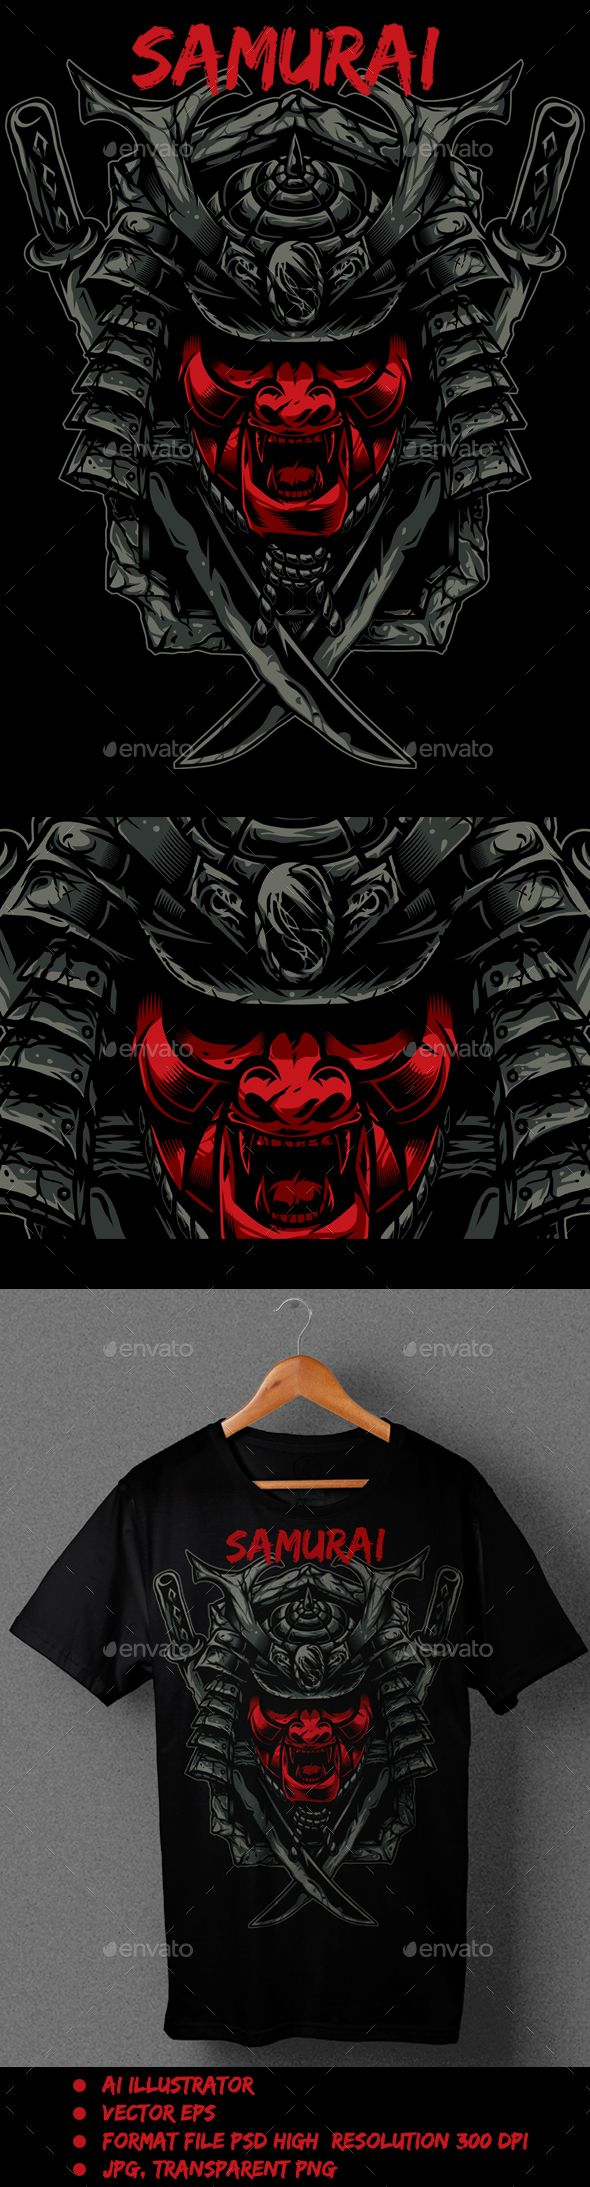 Samurai Red T-Shirt illustration Vector AI, EPS #design Download: http://graphicriver.net/item/samurai-red/13037124?ref=ksioks